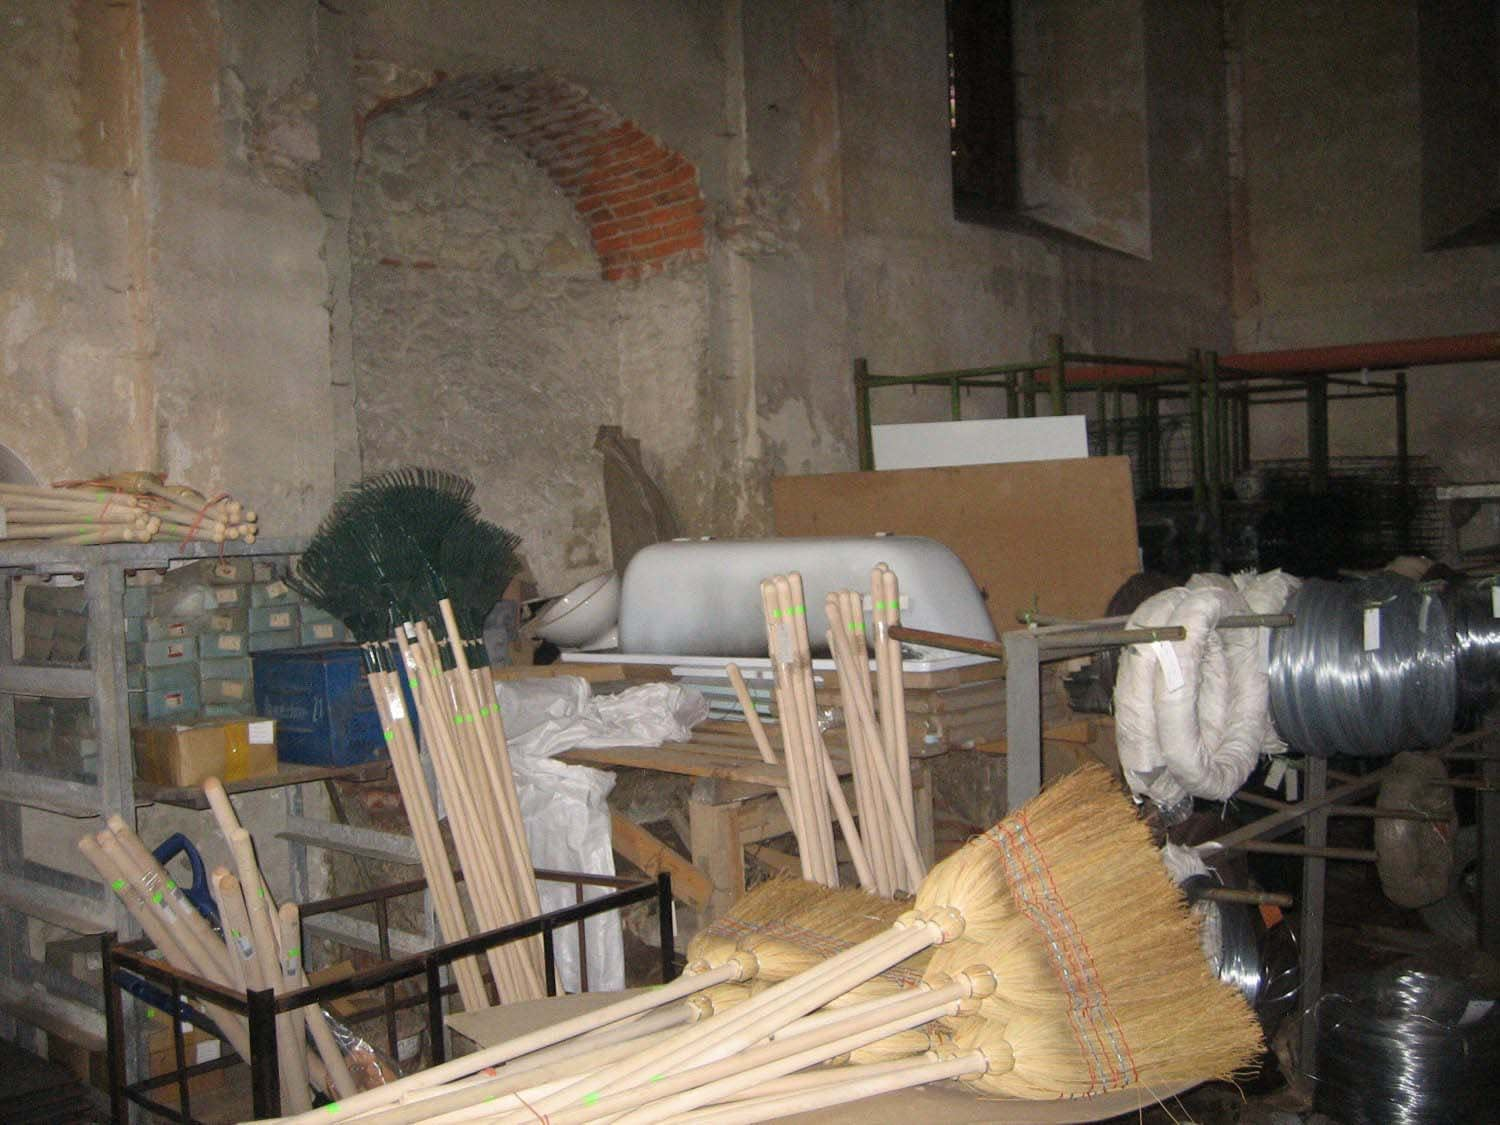 Bardejov Old Synagogue interior Eastern wall showing various building supplies occupying the space before restoration